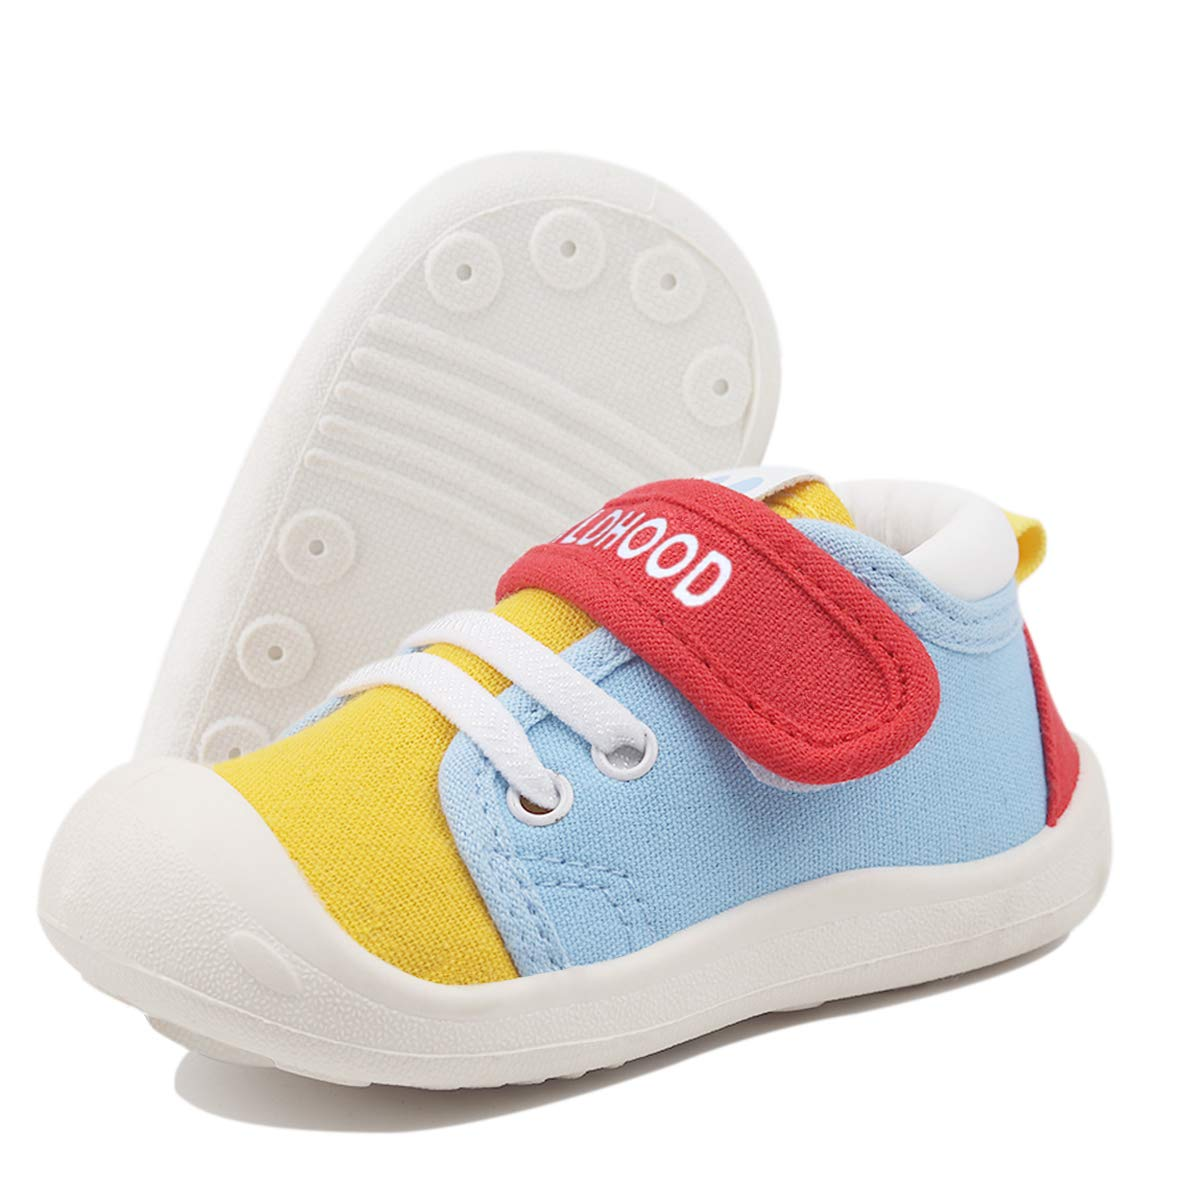 DEBAIJIA Baby First-Walking Shoes 1-4 Years Kid Shoes Toddler Infant Boys Girls Soft Canvas Breathable Sneakers